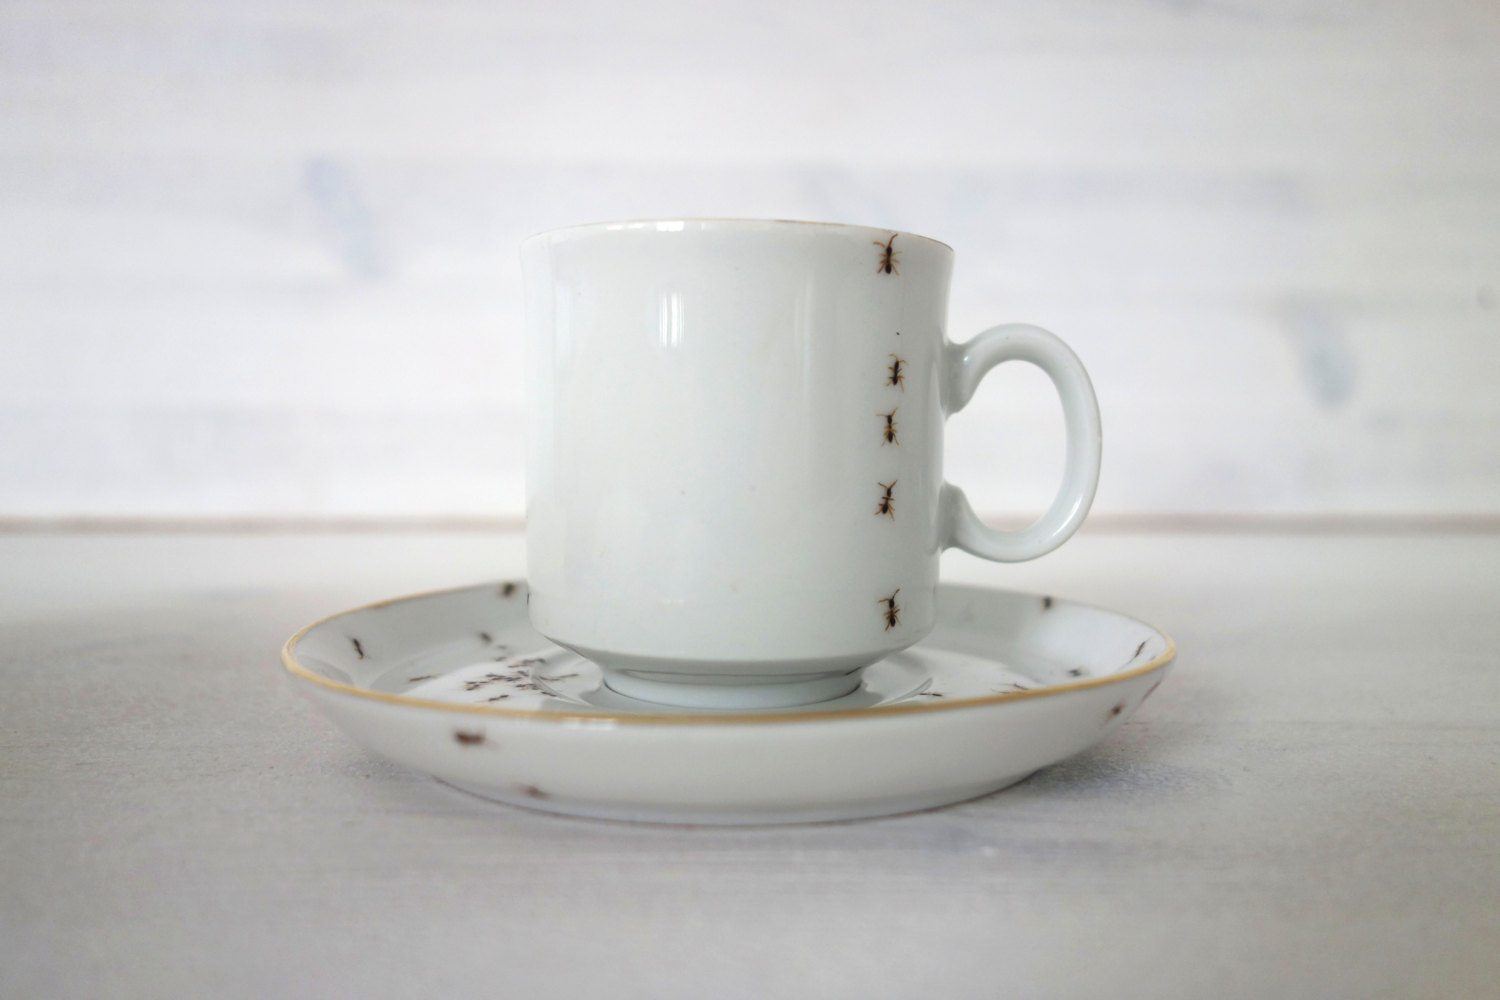 ants-on-porcelain-evelyn-bracklow-02